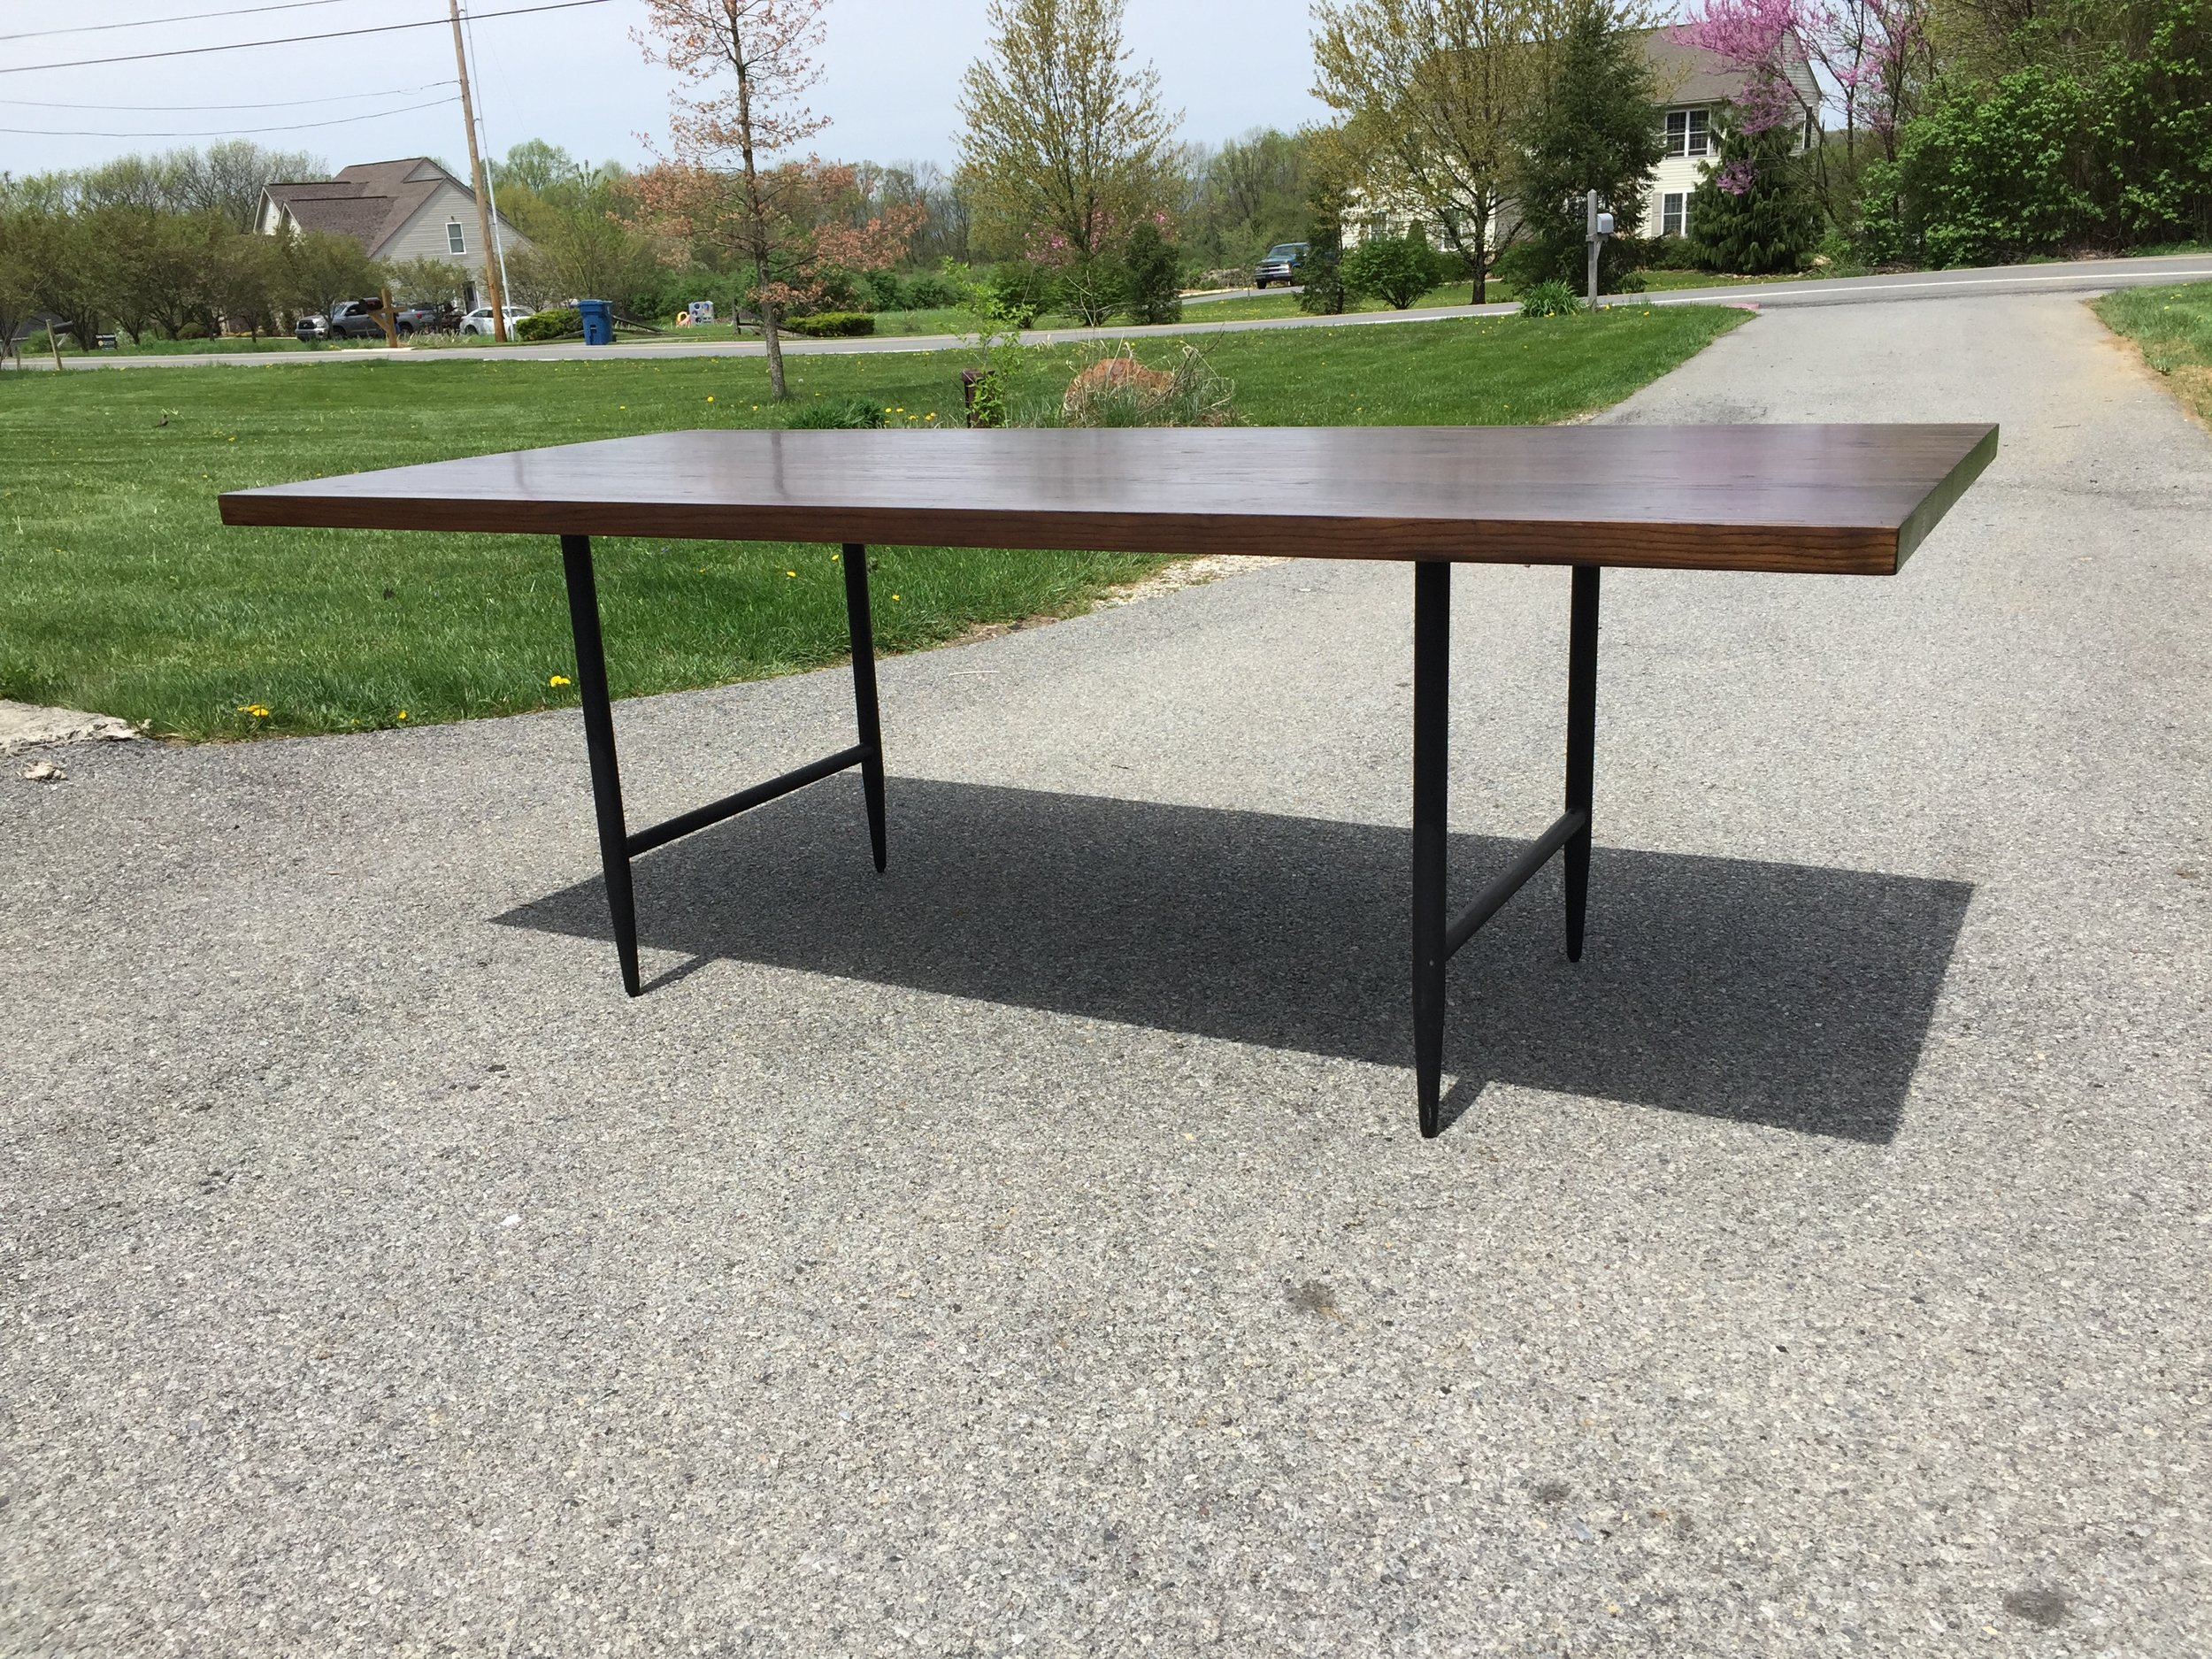 "Beautiful dining table by California Designer Maria Yee. Known for her solid wood, eco friendly and sustainable designs, her items are top notch.  This 88"" long table is beautiful and perfect for many decor styles. The matte black steel legs are sleek and lean."